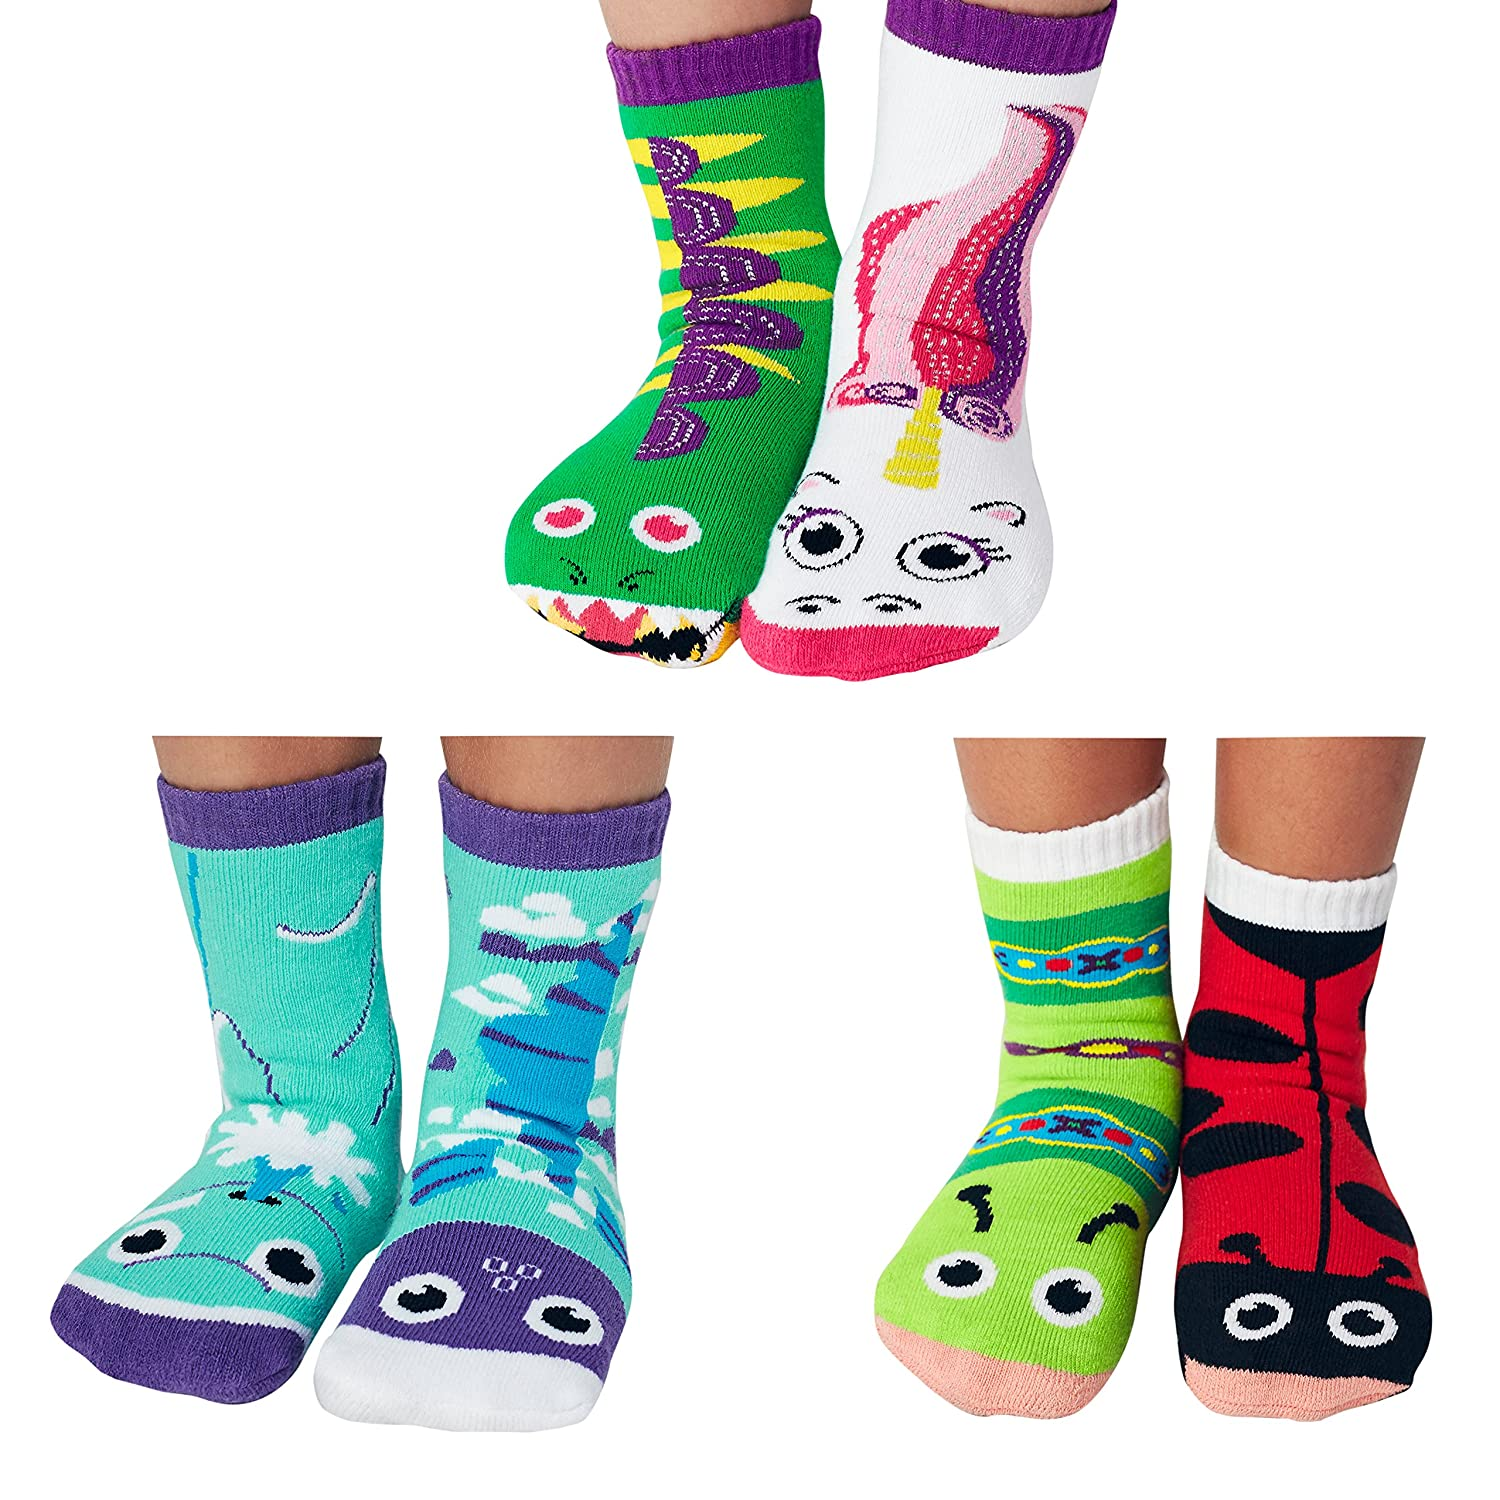 Funky Friends Mismatched Socks Kids Box - Ladybug and Caterpillar, Dragon and Unicorn, Dolphin and Fish Ages 4-8 PS-15a